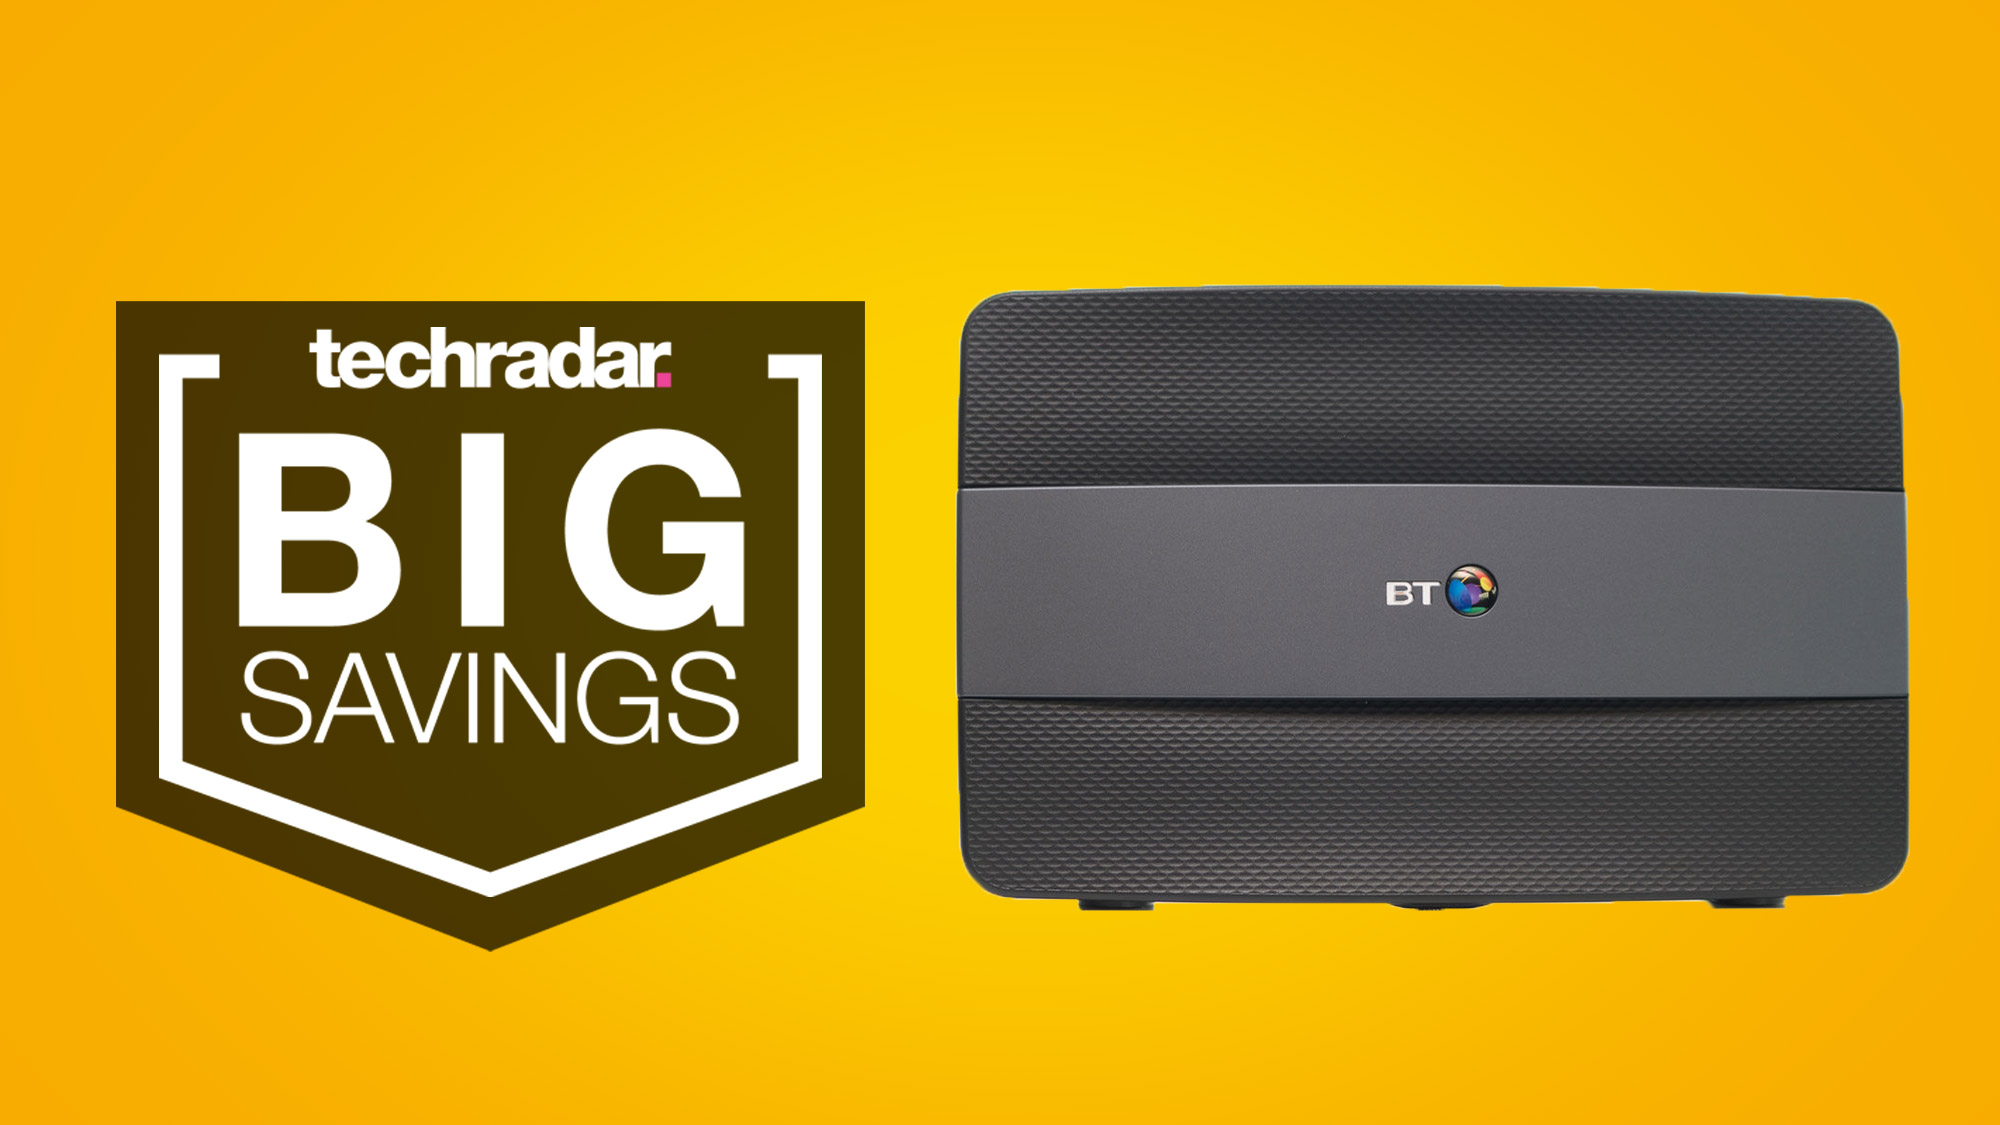 Sort your internet this weekend with one of these five excellent broadband deals